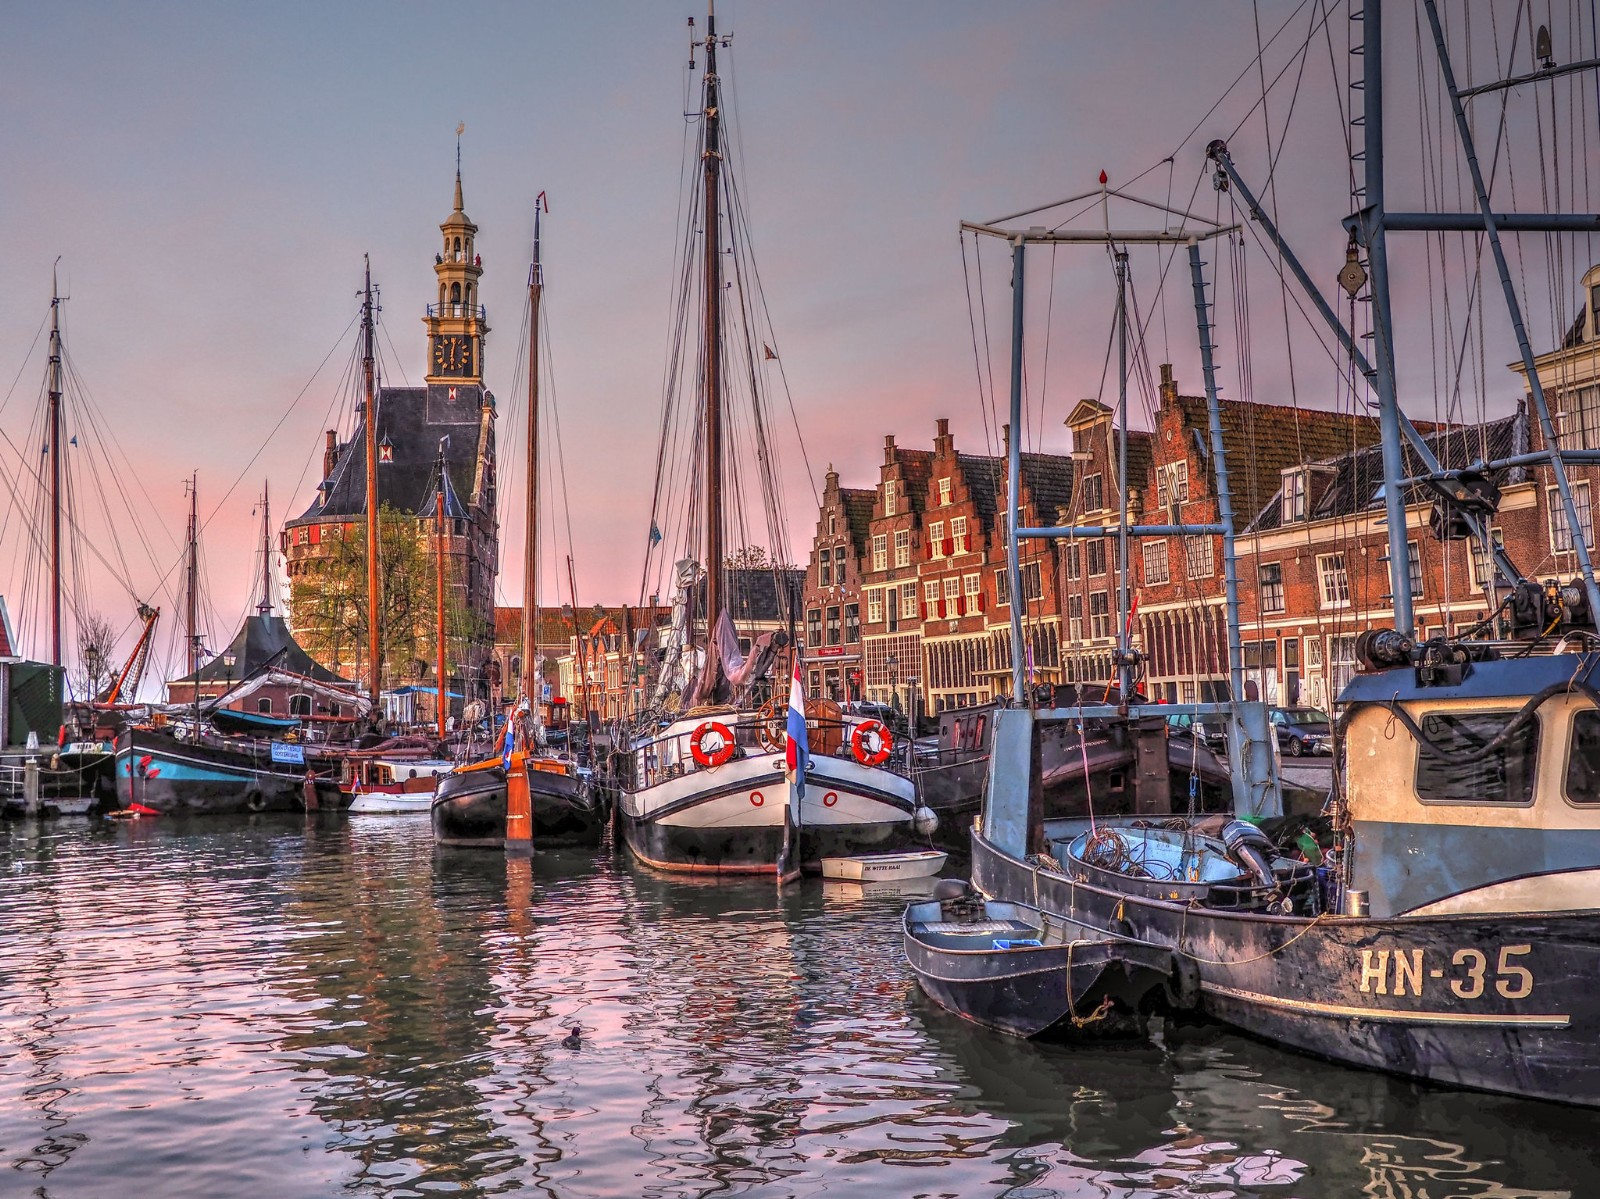 Harbor in Hoorn, North Holland, the Netherlands. Flickr:bk